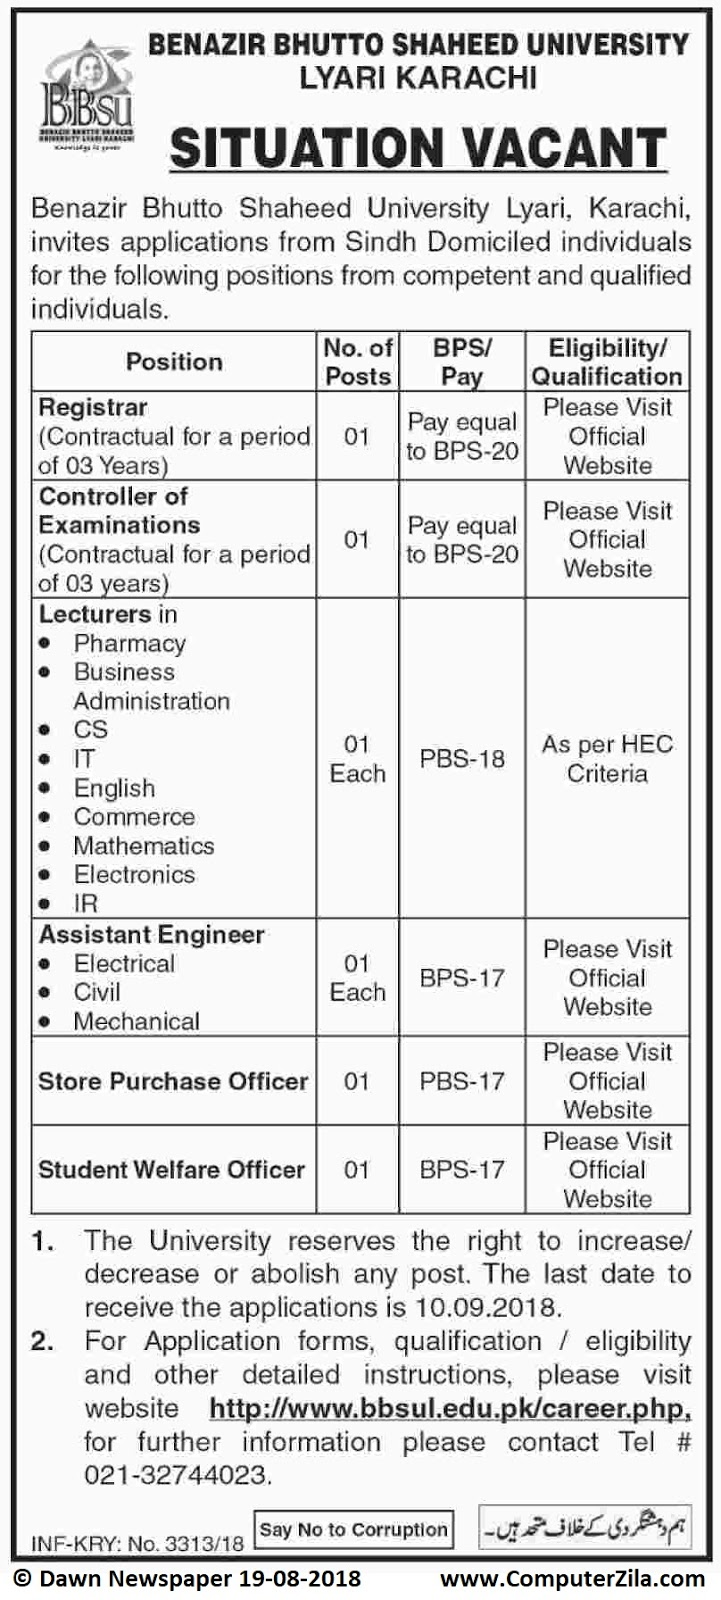 Situation Vacant at Benazir Bhutto Shaheed University Lyari Karachi